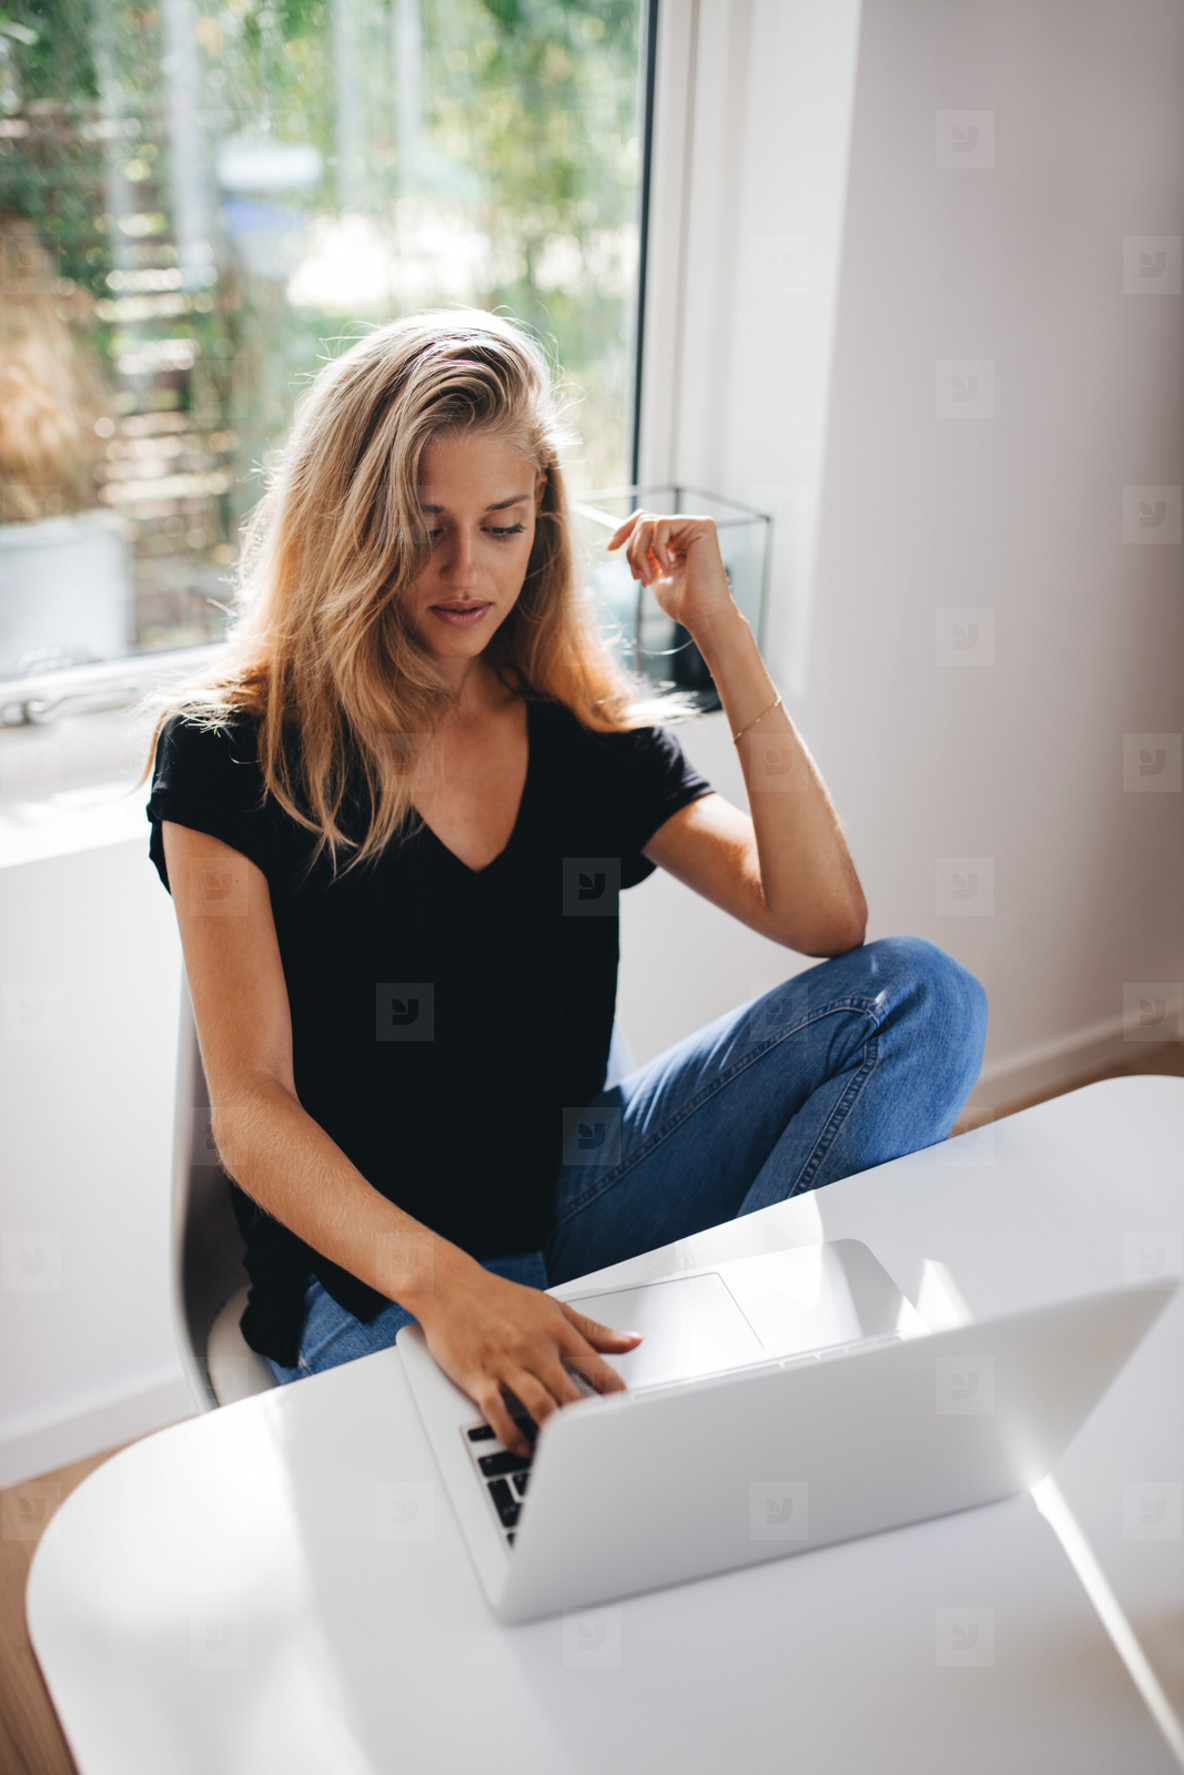 Female working on laptop at home